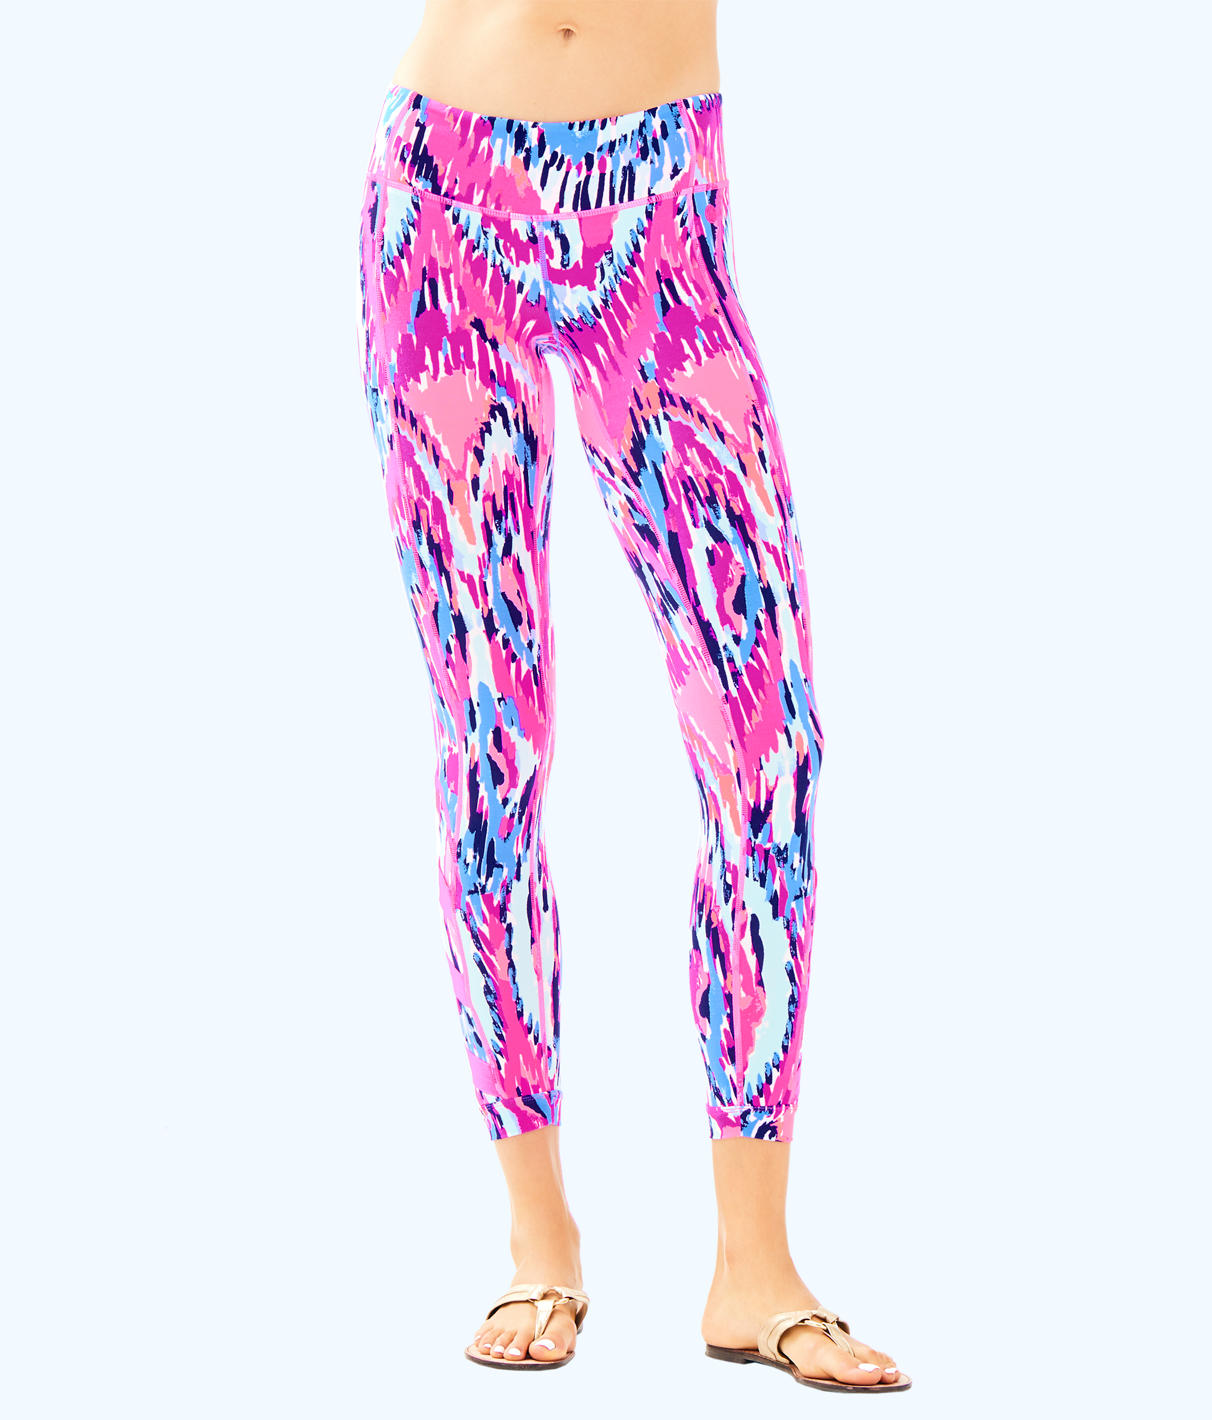 Lilly Pulitzer Lilly Pulitzer Womens 26